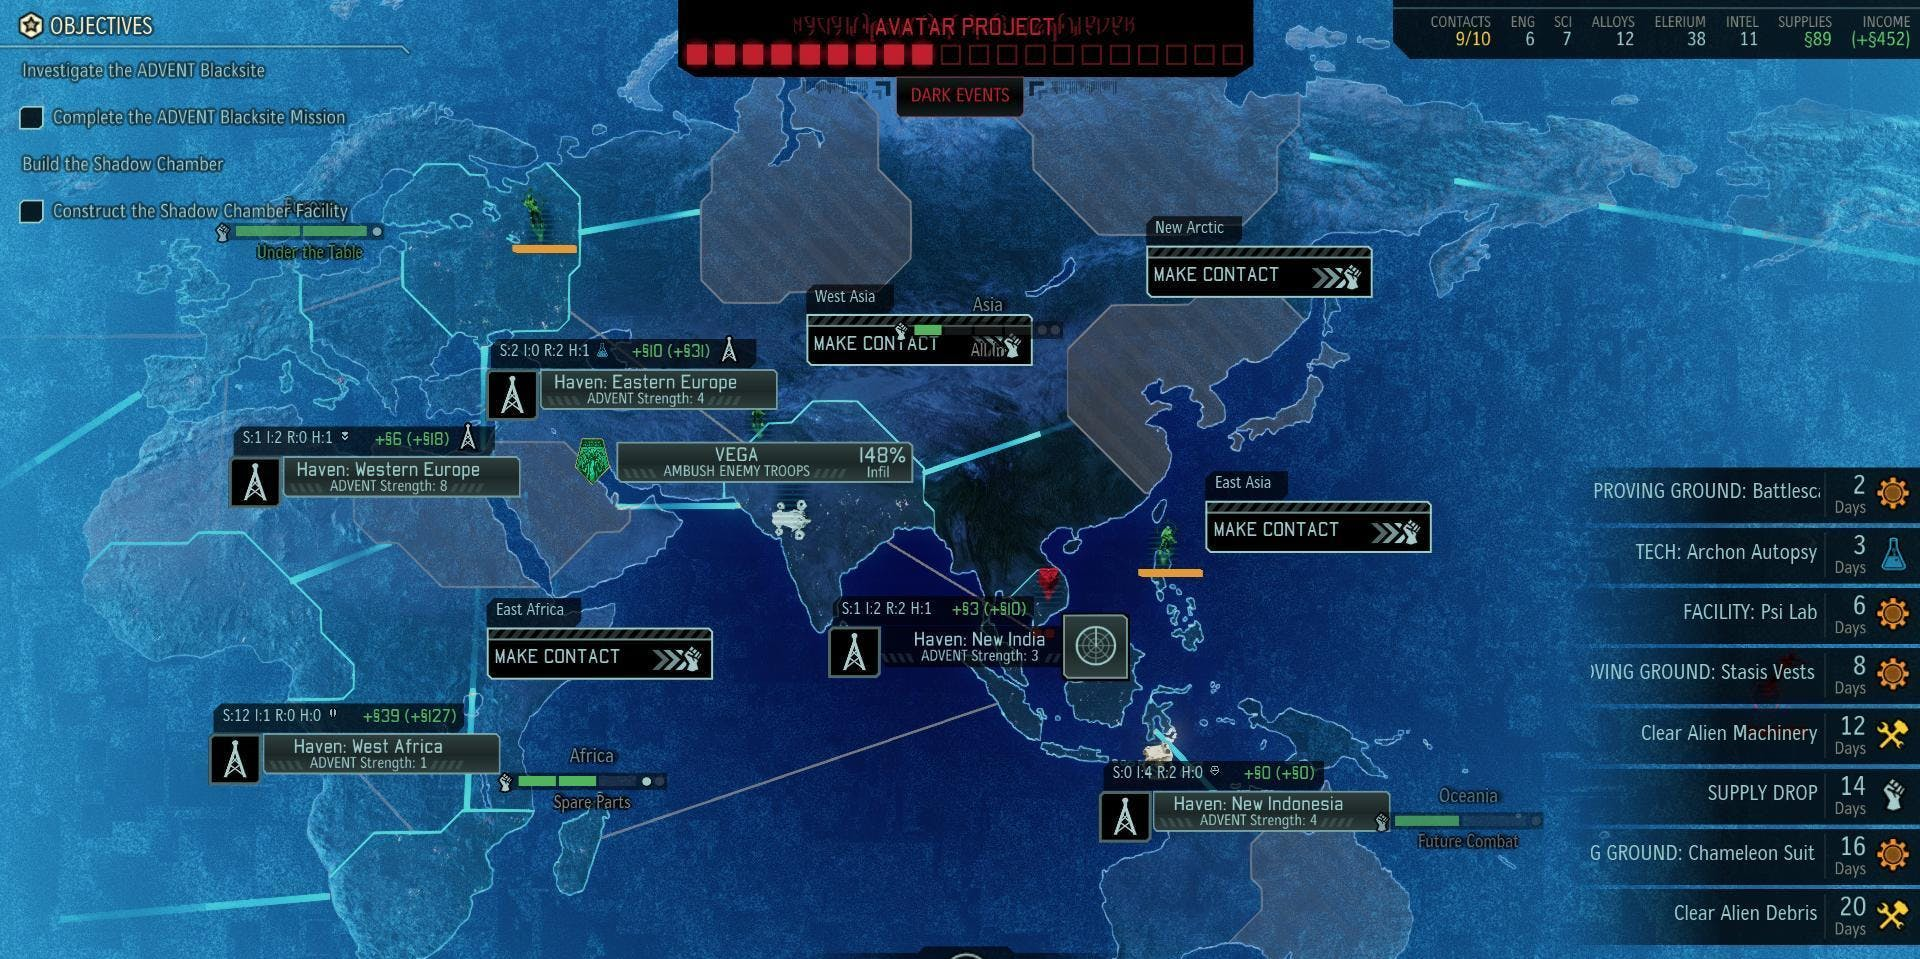 The new 'XCOM 2' map looks deliciously complex.